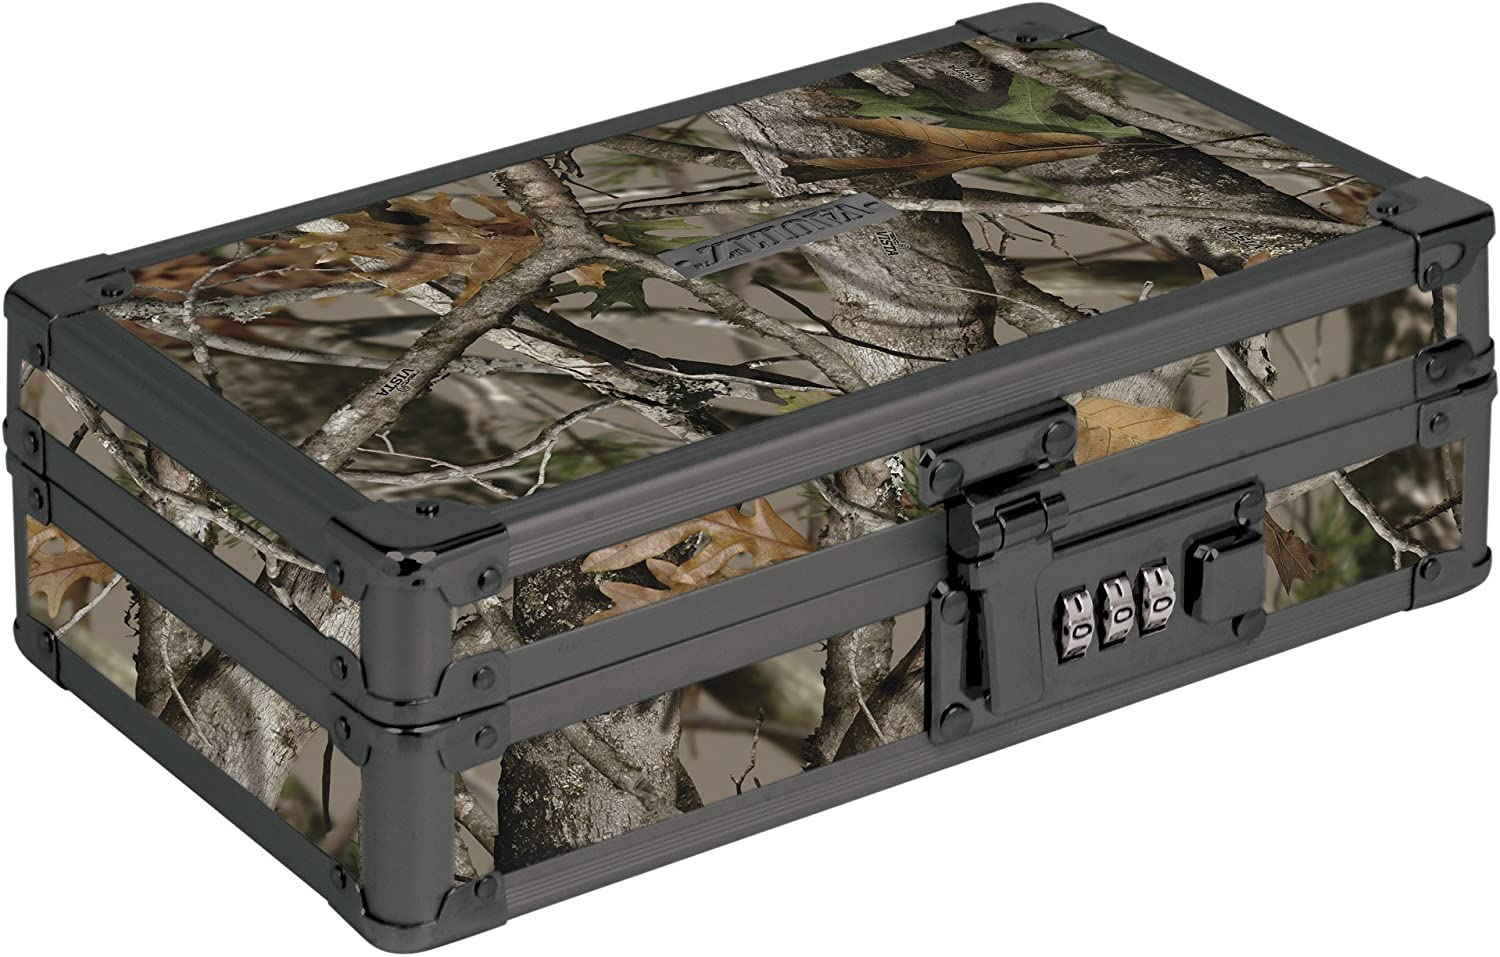 "Vaultz Locking Supplies & Pencil Box with Combination Lock, 5""x 2.5""x 8.5"", Next Camo (VZ00860)"